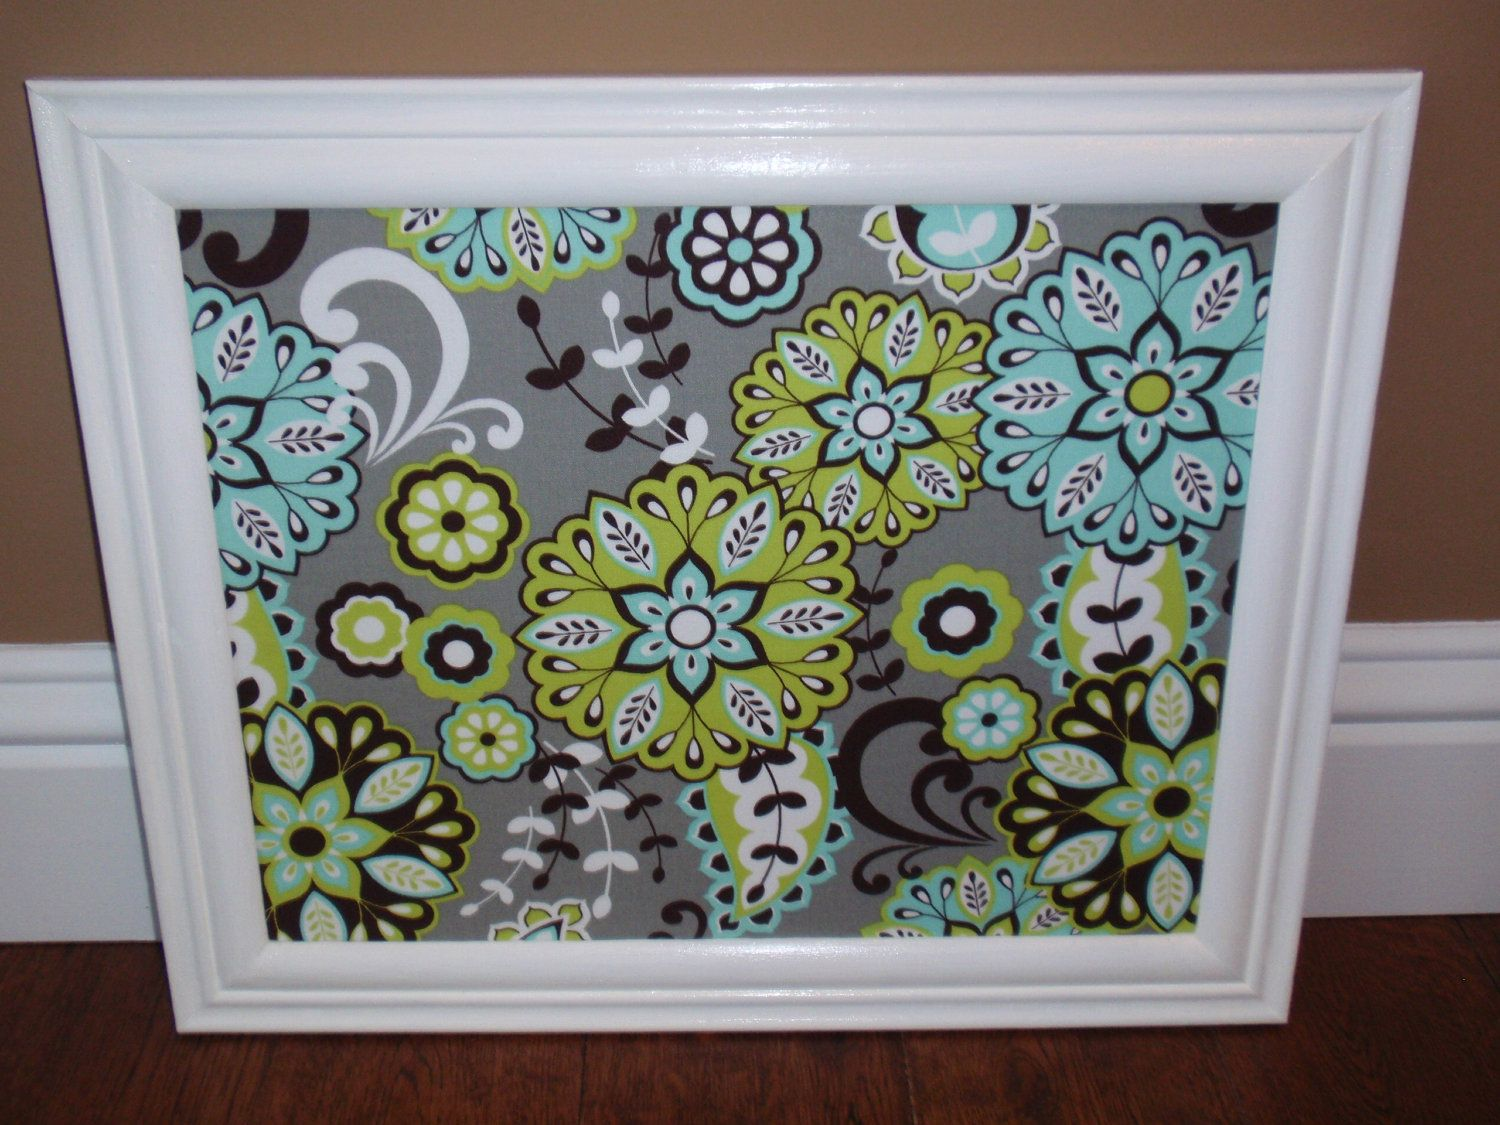 Magnetic craft board - Framed Magnetic Board Grey Fabric With Limegreen Turquoise Flowers In Glossy White Frame With Four